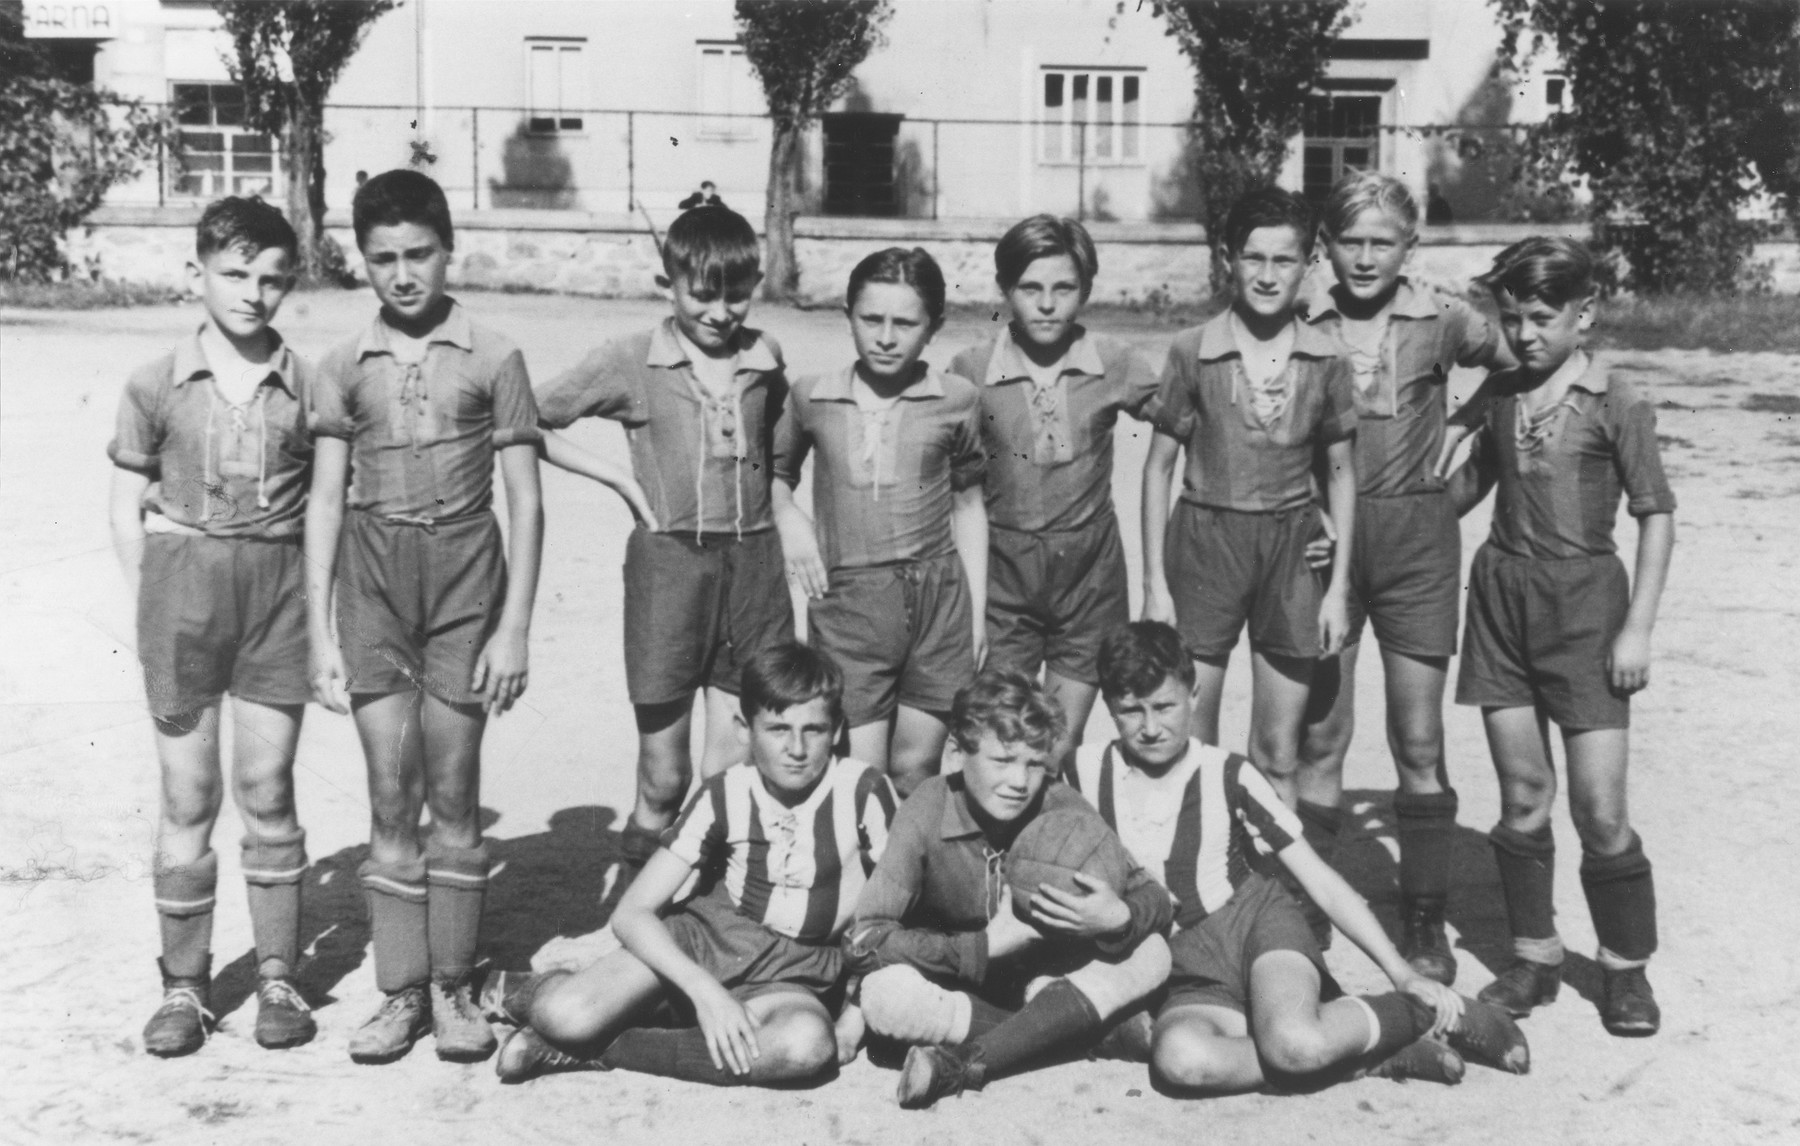 Bedrich Deutsch (standing second from the left) poses with the other members of a soccer team in Znojmo, Moravia.  He is the only Jew in the group.